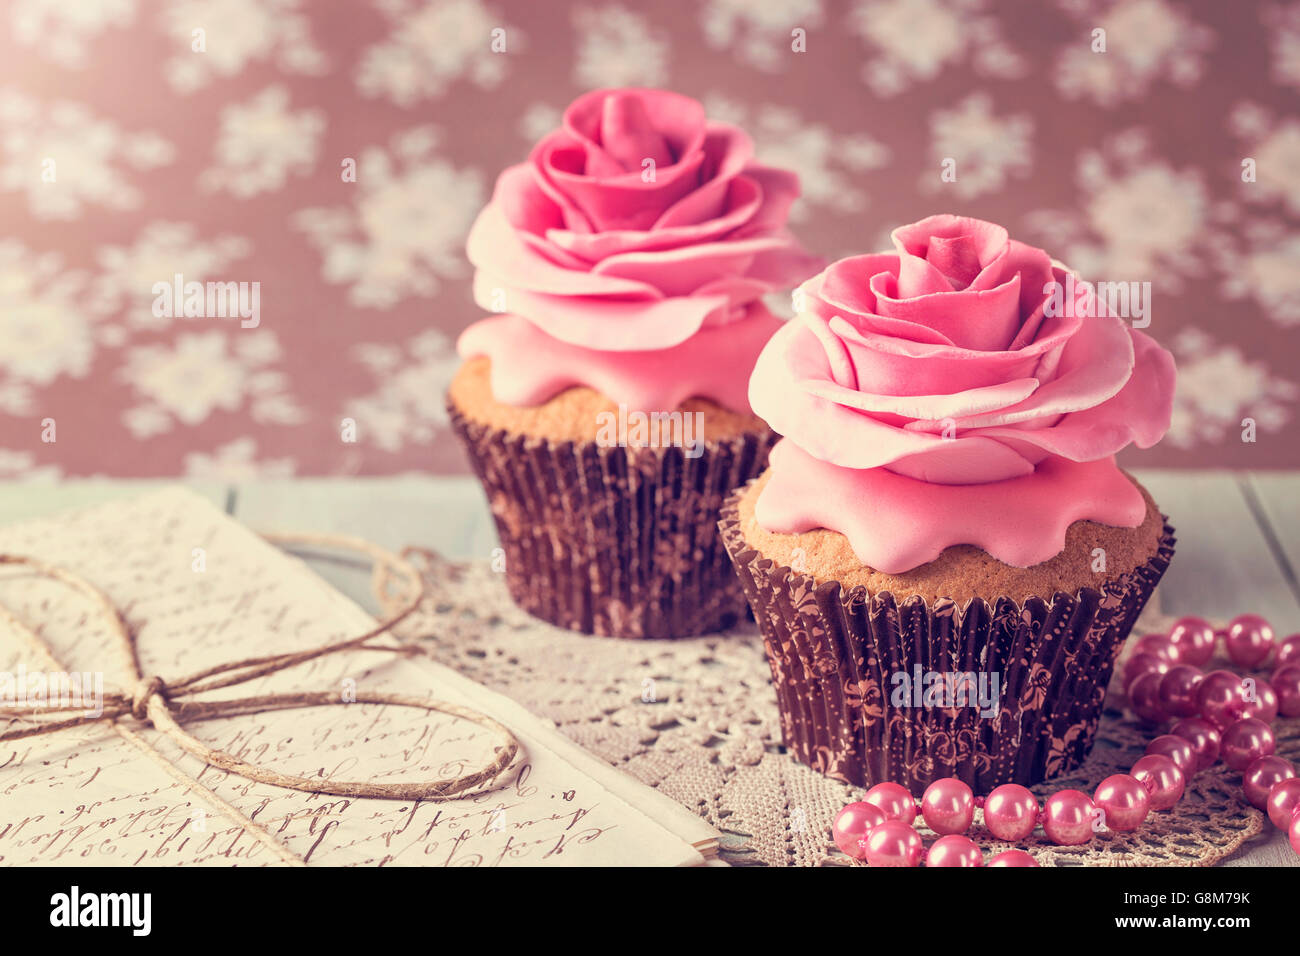 Cupcakes with sweet rose flowers and a letter - Stock Image